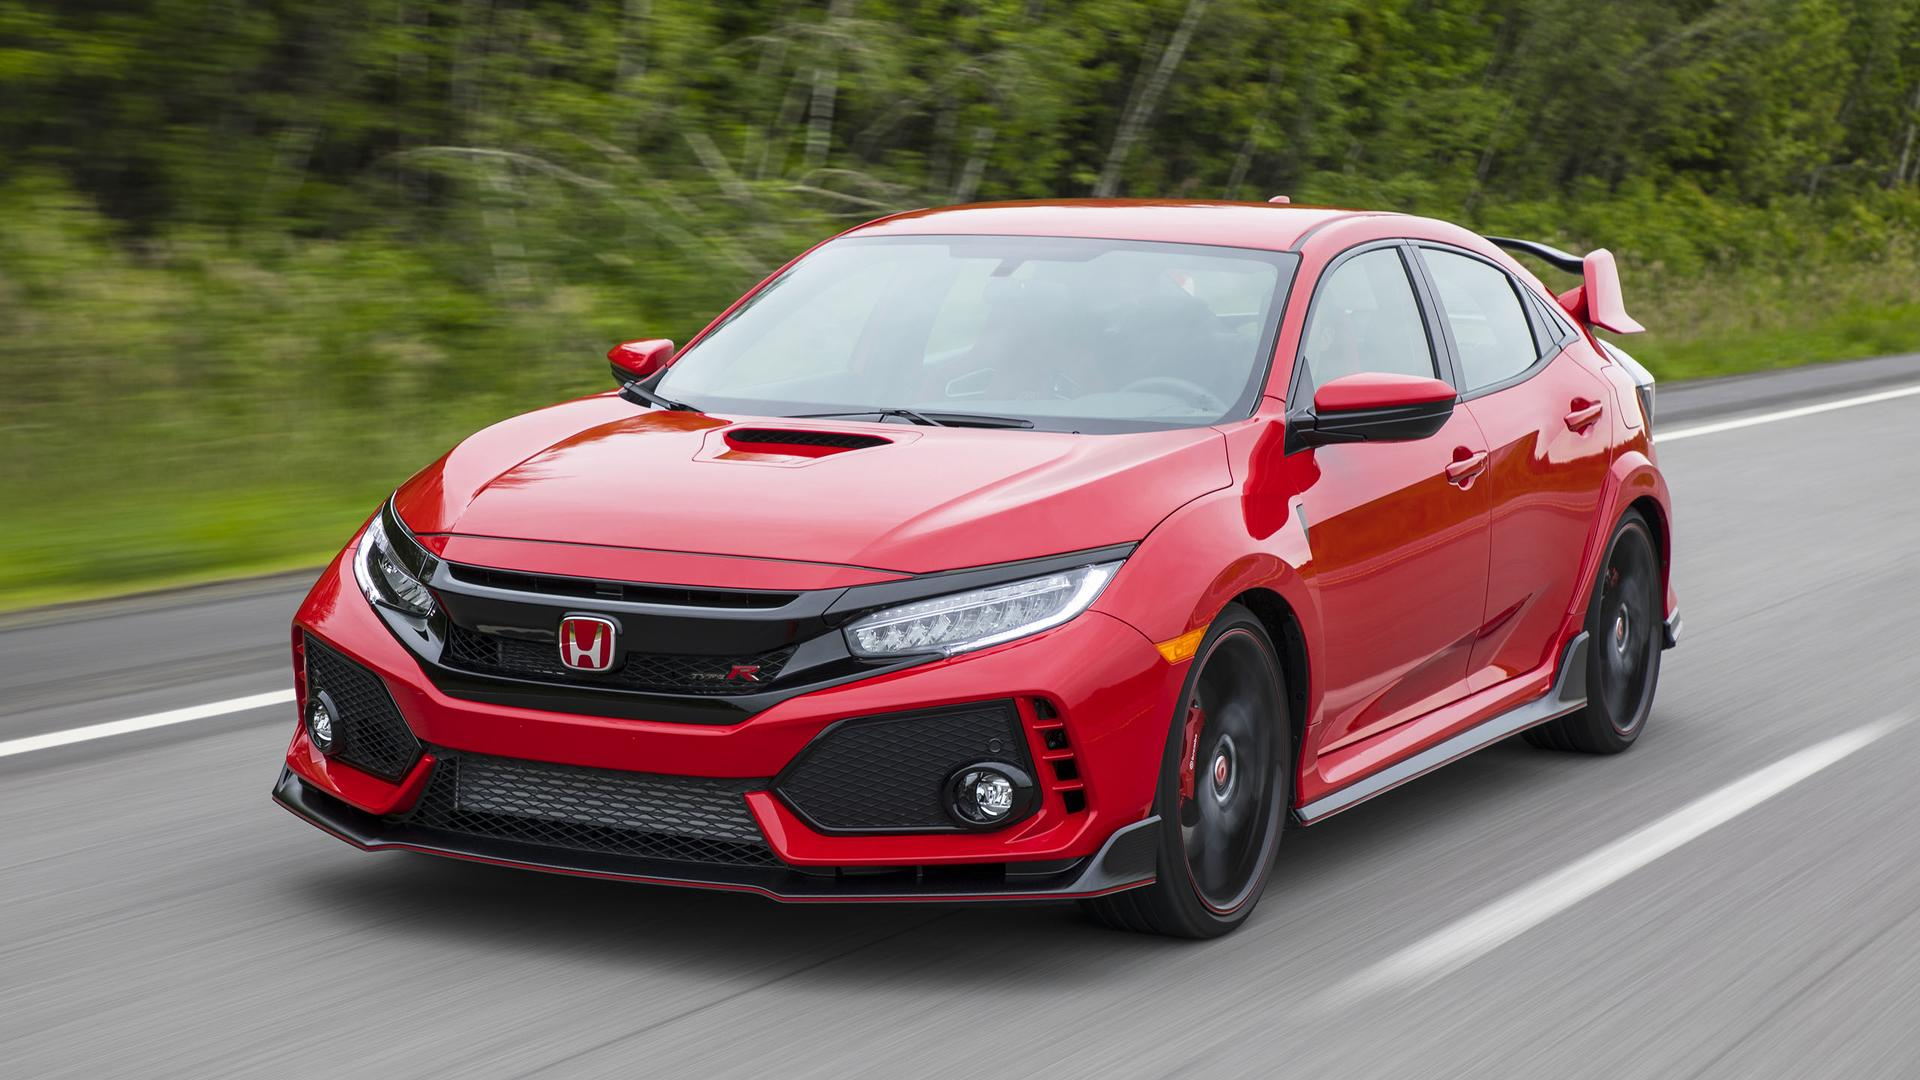 honda civic type r dyno numbers reveal hidden horsepower. Black Bedroom Furniture Sets. Home Design Ideas